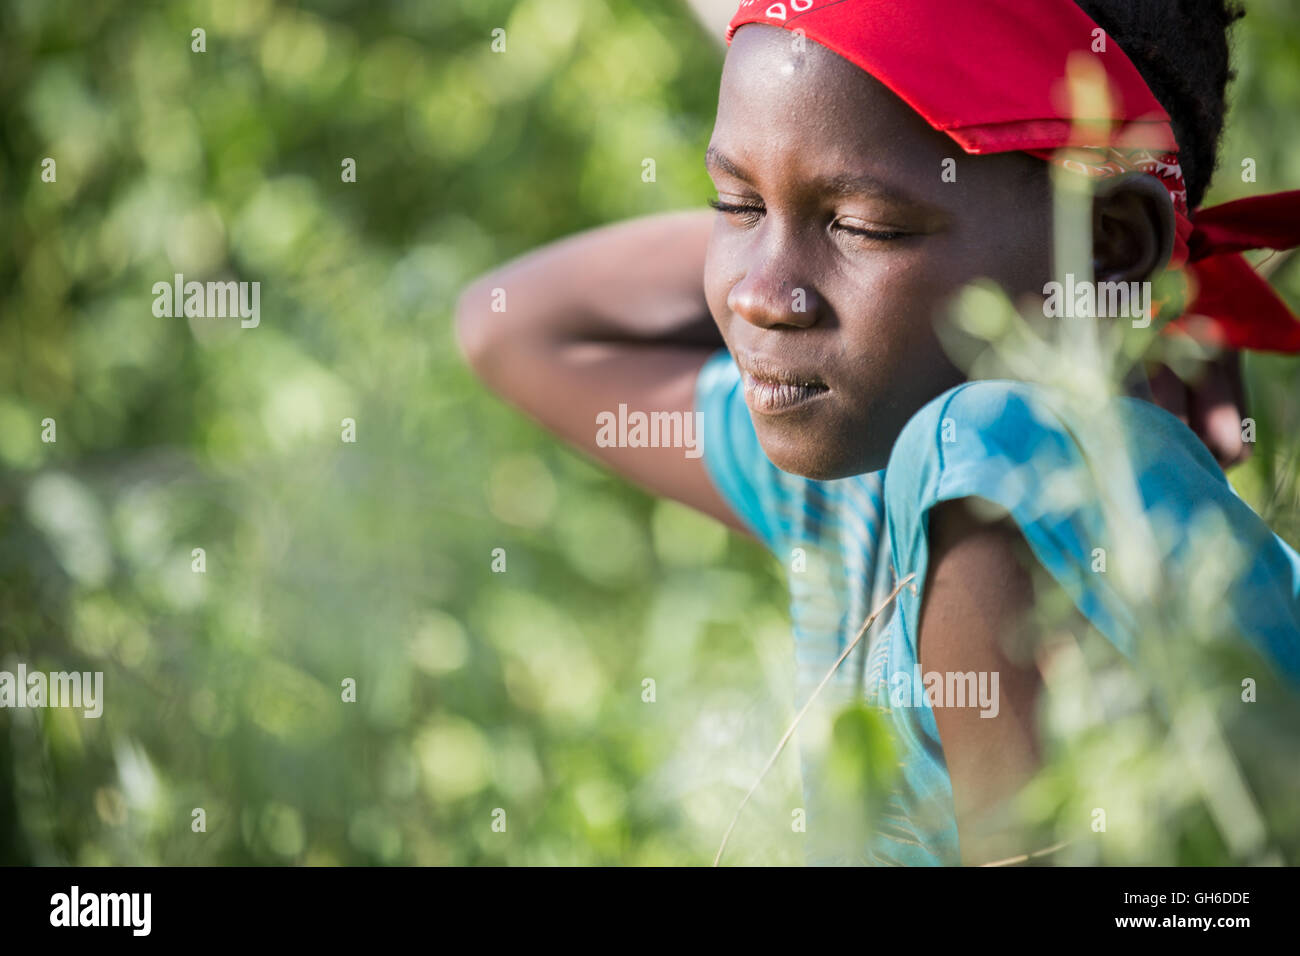 Daydream - Young Girl from Nyangatom (Bume) Tribe in Ethiopia. Stock Photo